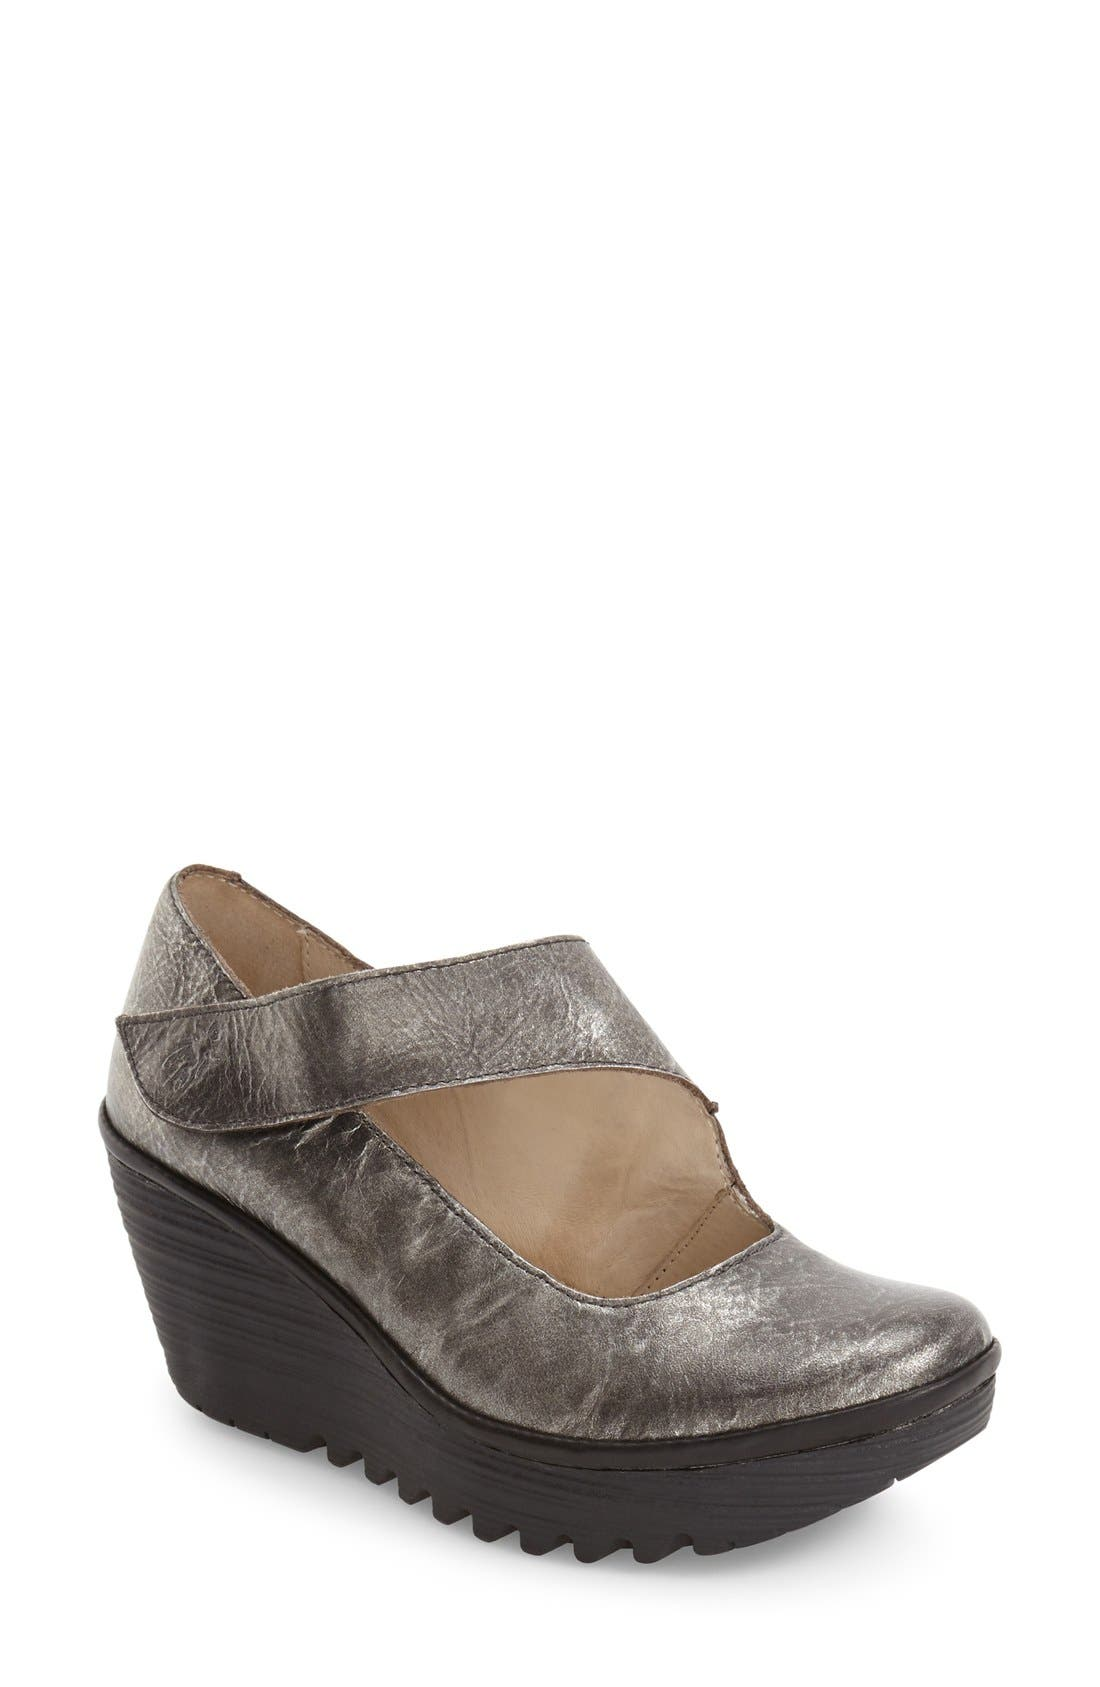 FLY LONDON 'Yasi' Wedge Pump